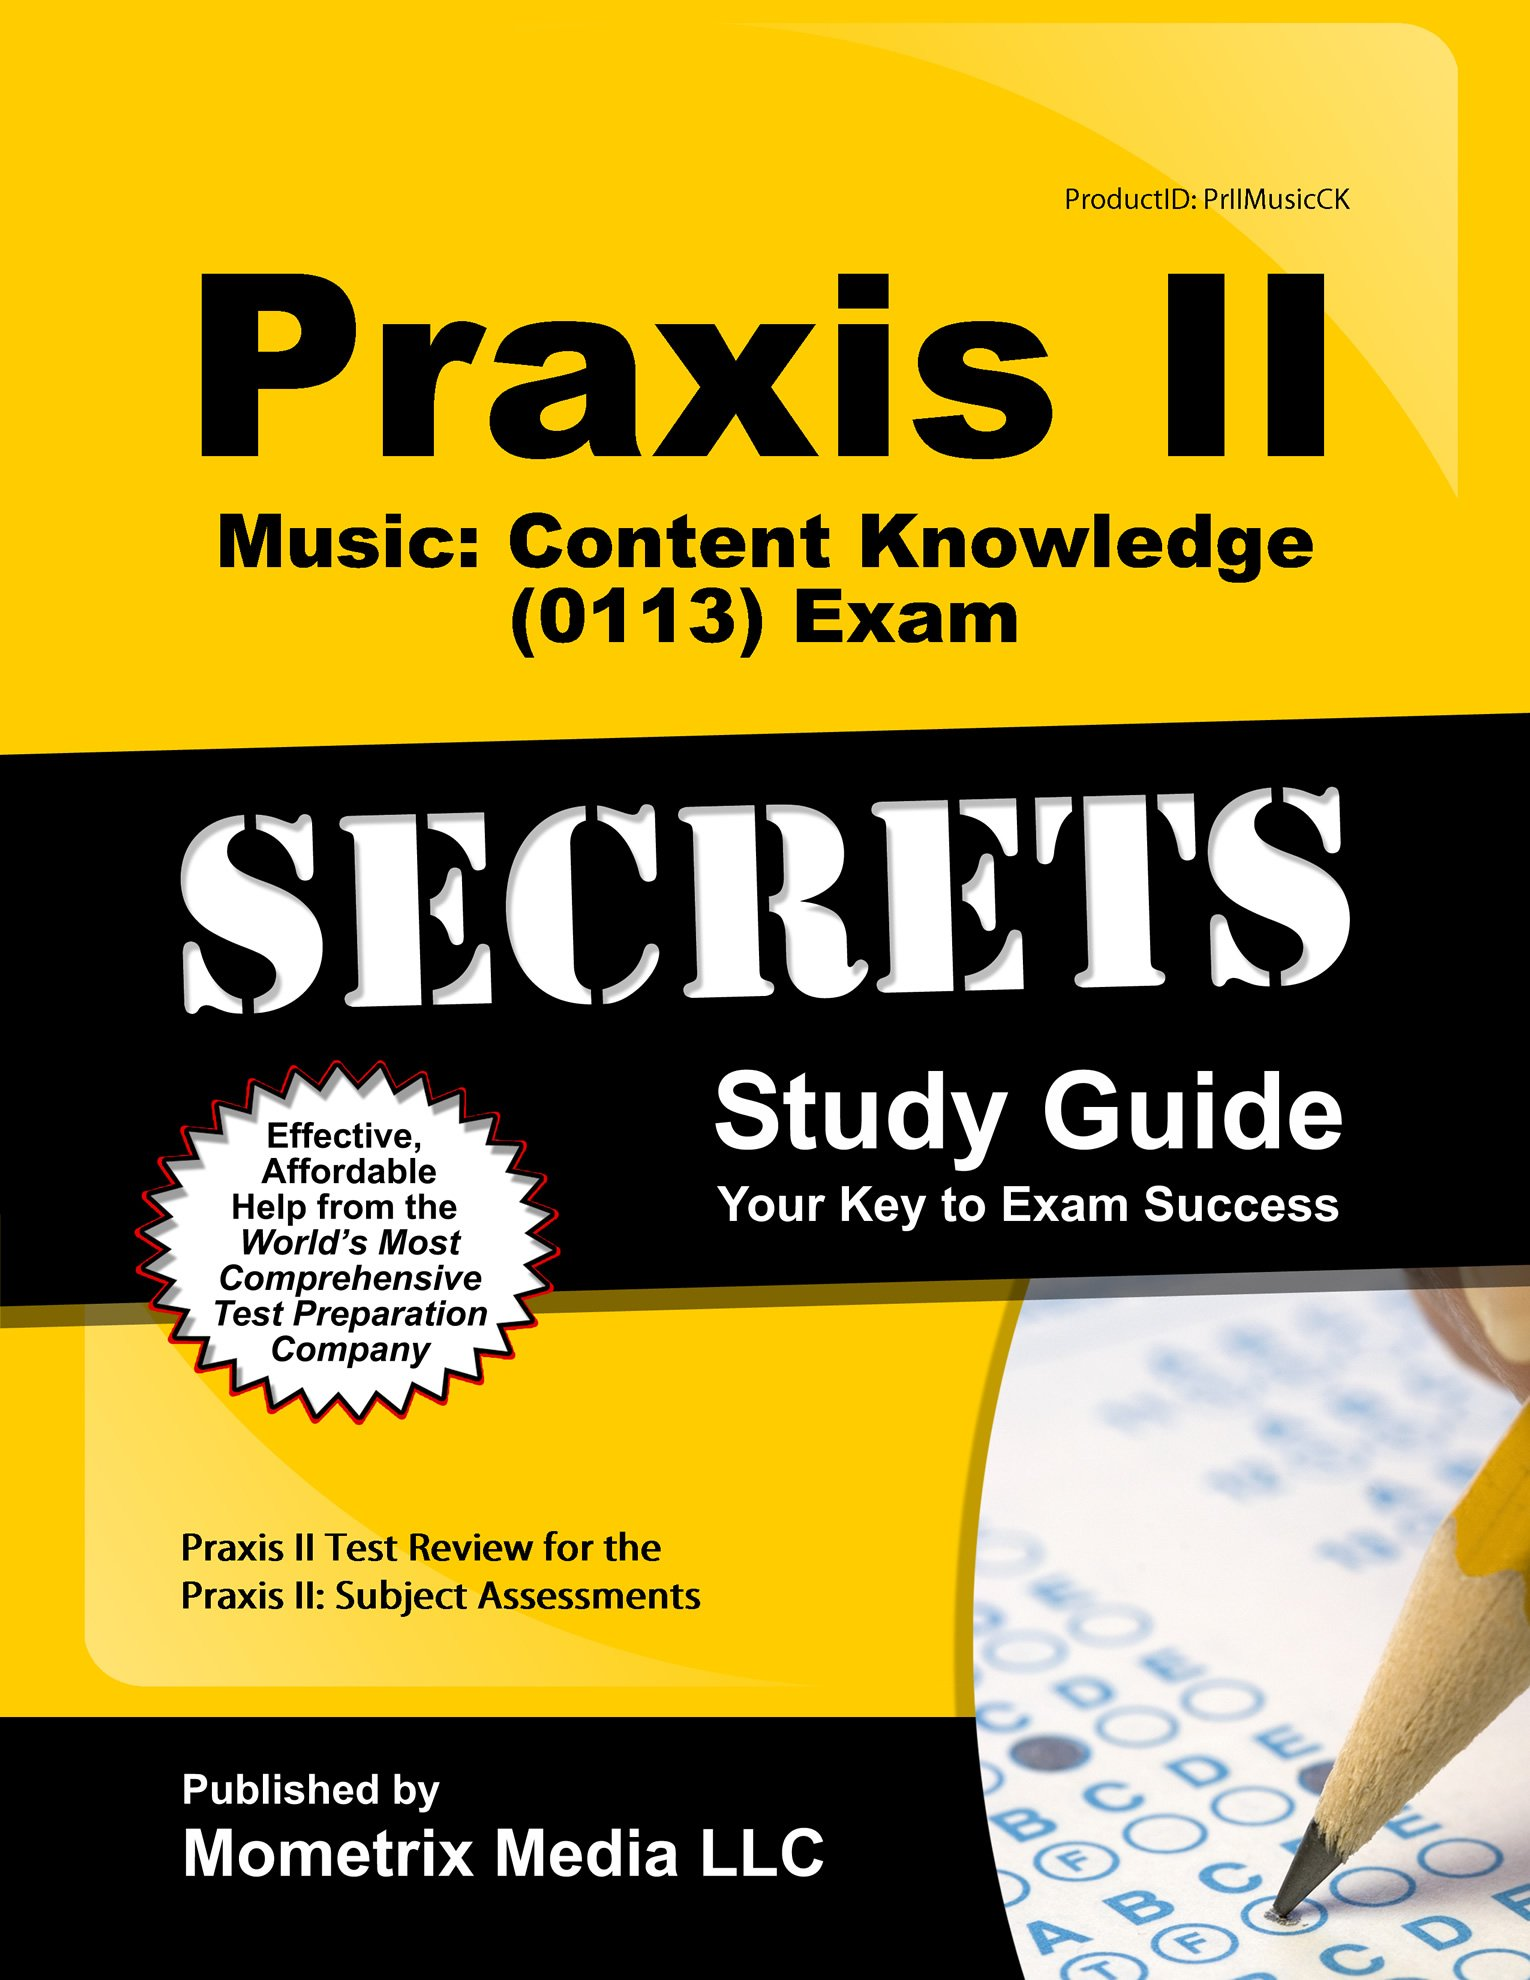 Praxis II Music: Content Knowledge (0113) Exam Secrets Study Guide: Praxis  II Test Review for the Praxis II: Subject Assessments: Amazon.com: Books